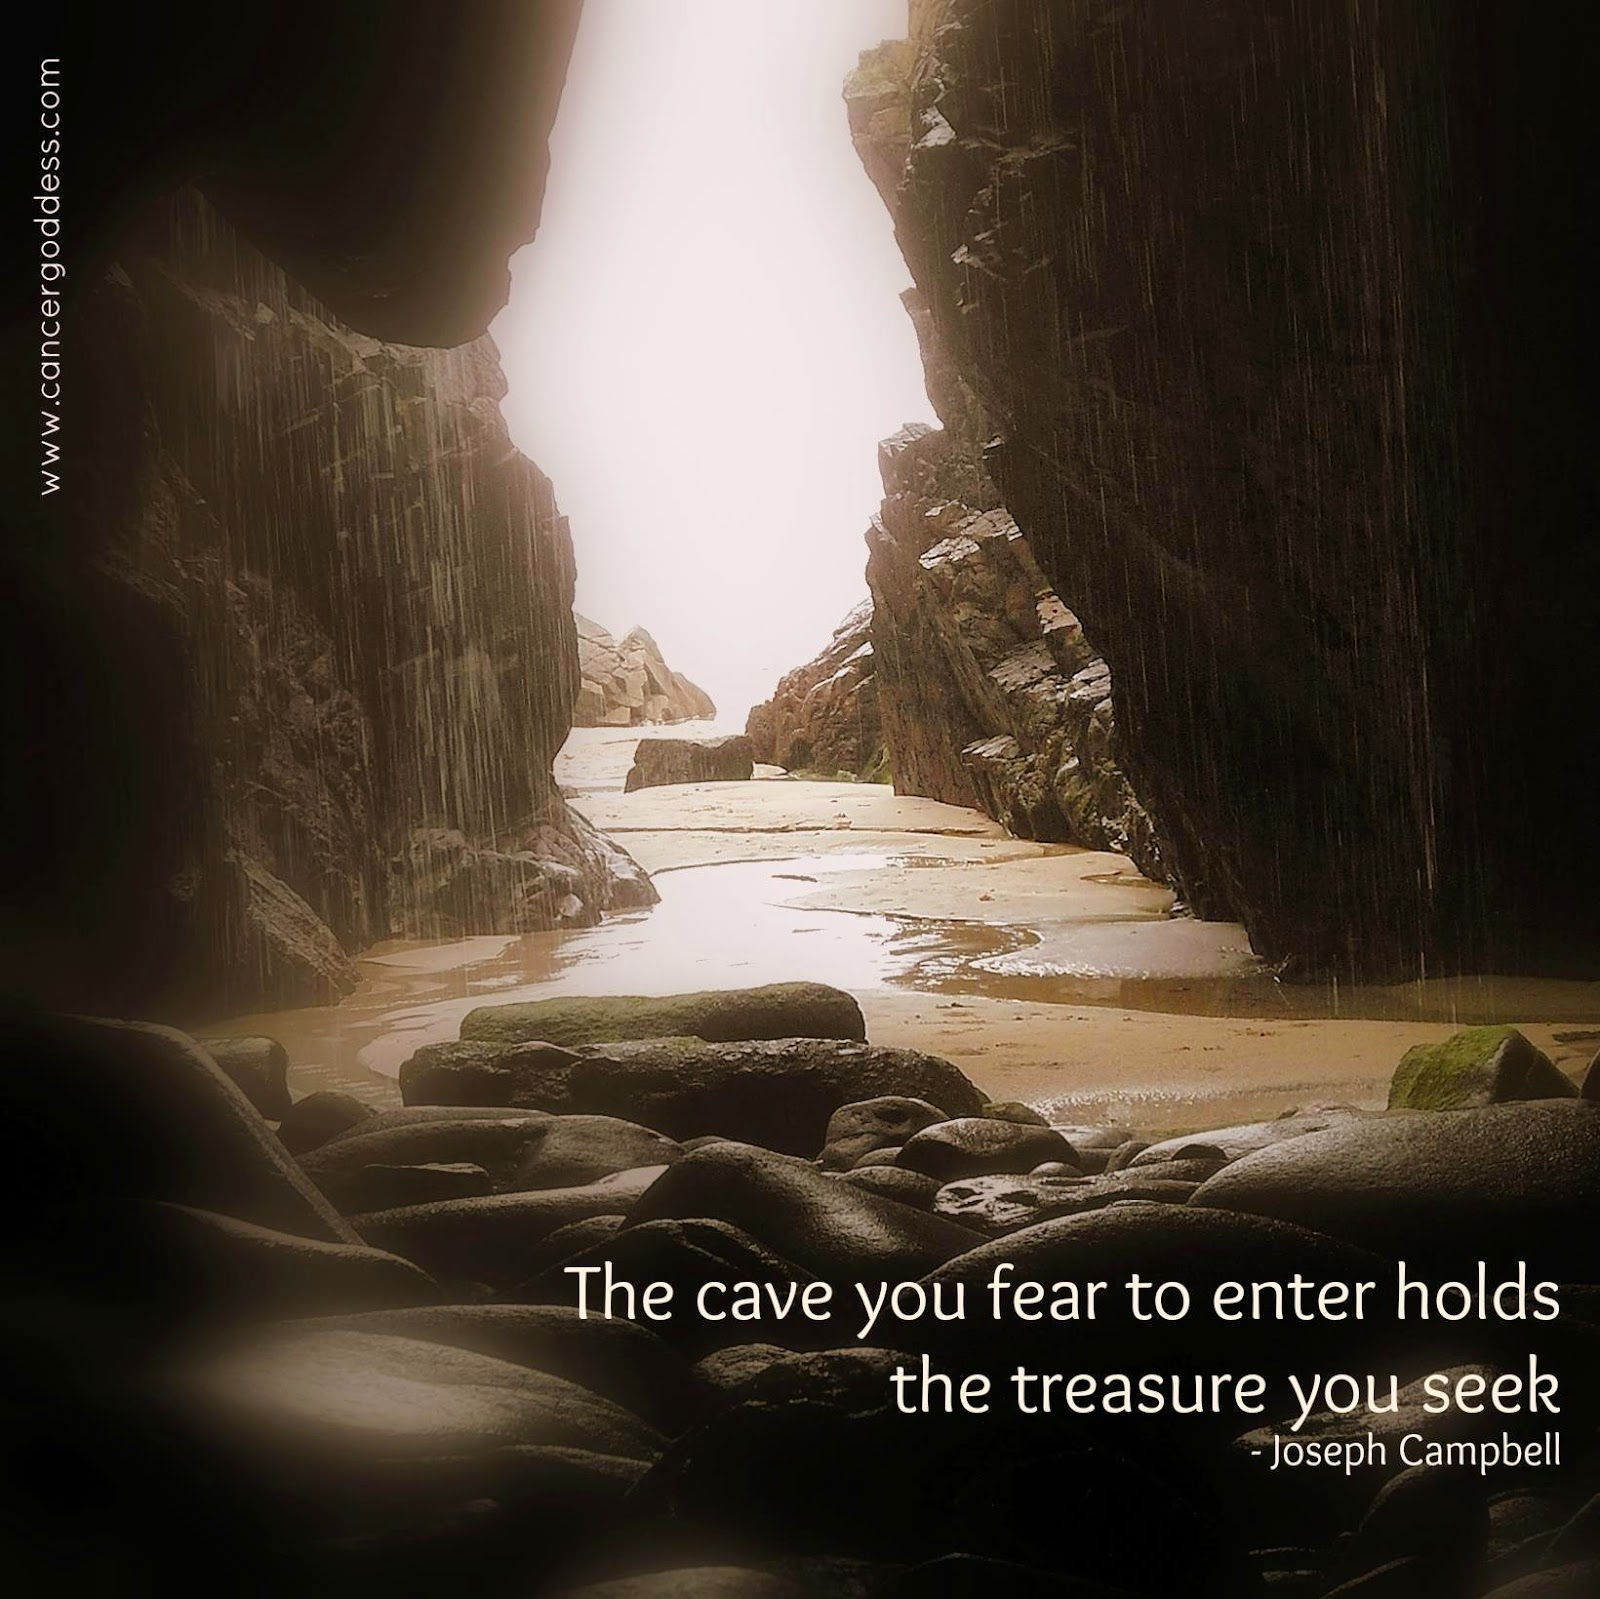 The cave you fear to enter - Joseph Campbell quote